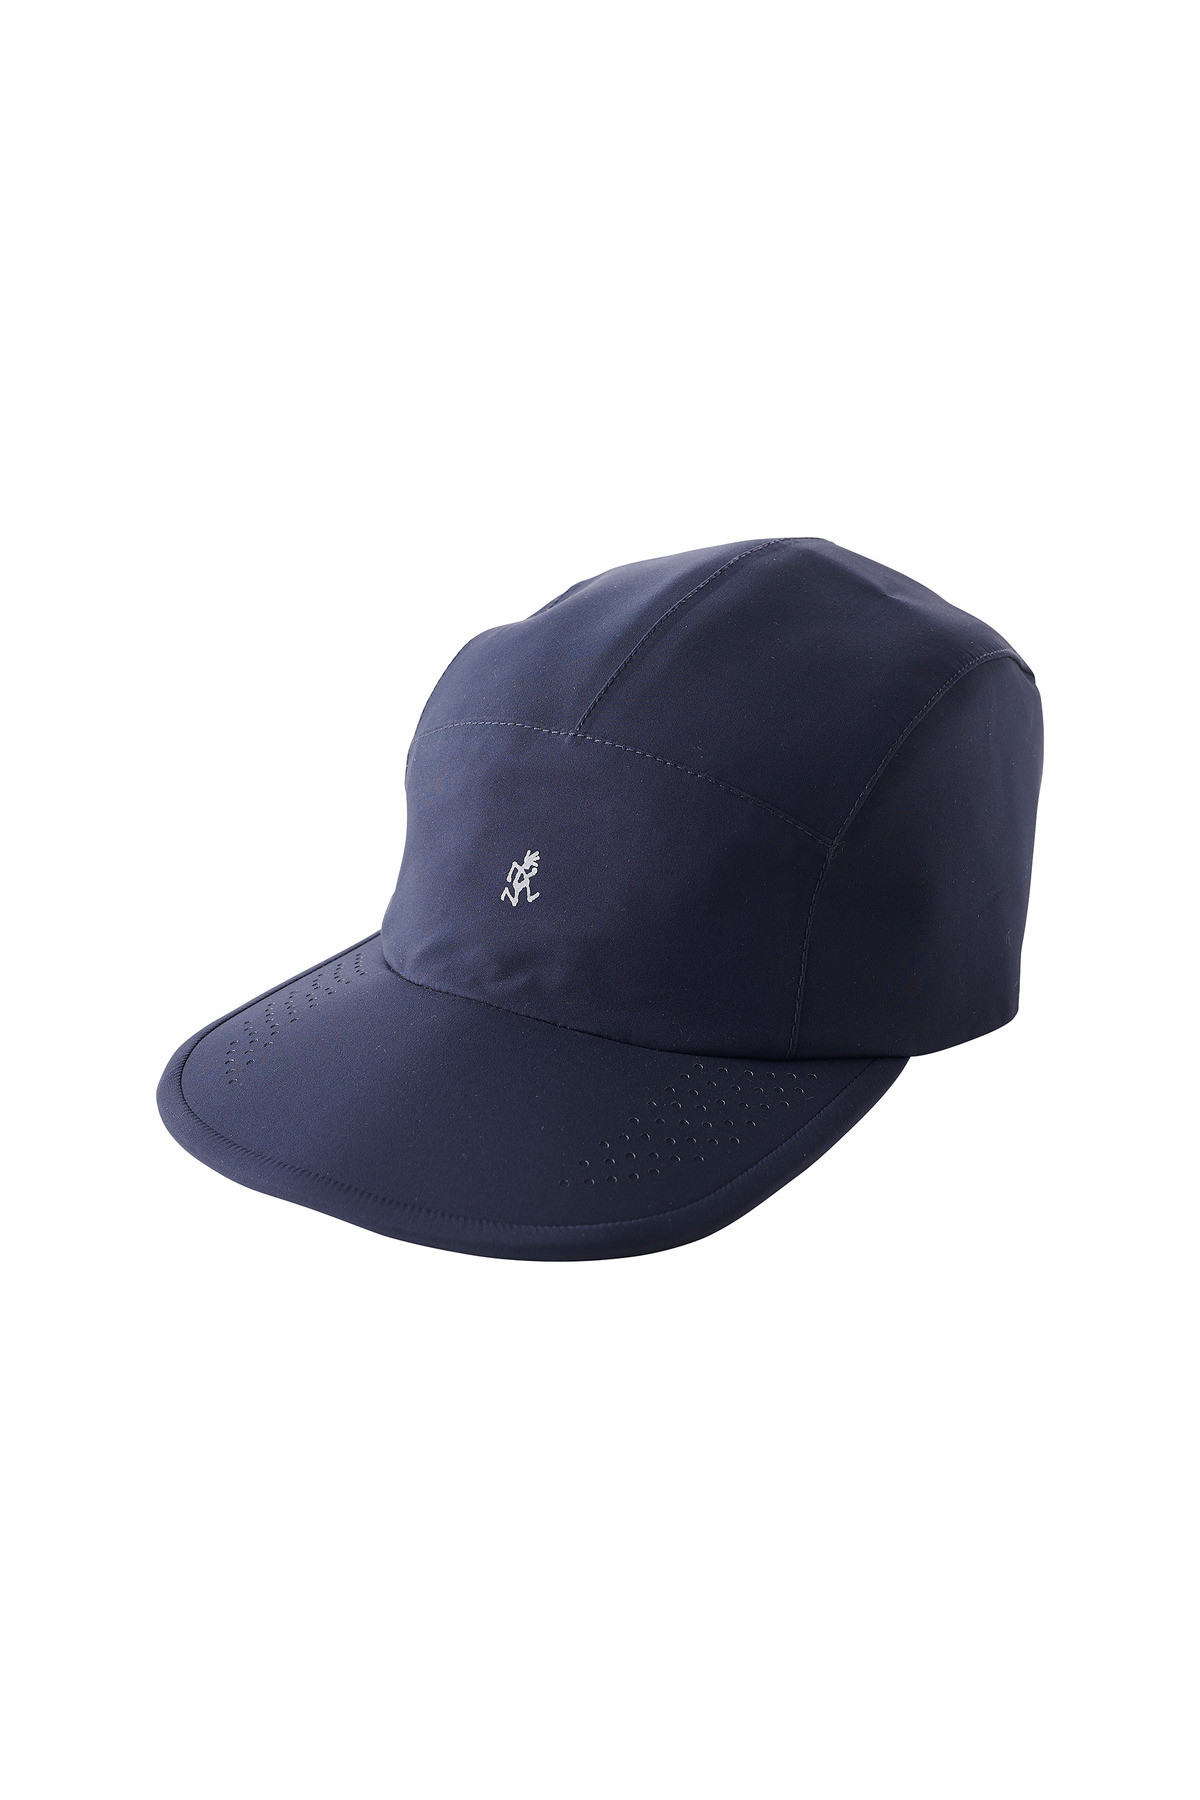 3 LAYER TECH JET CAP DOUBLE NAVY